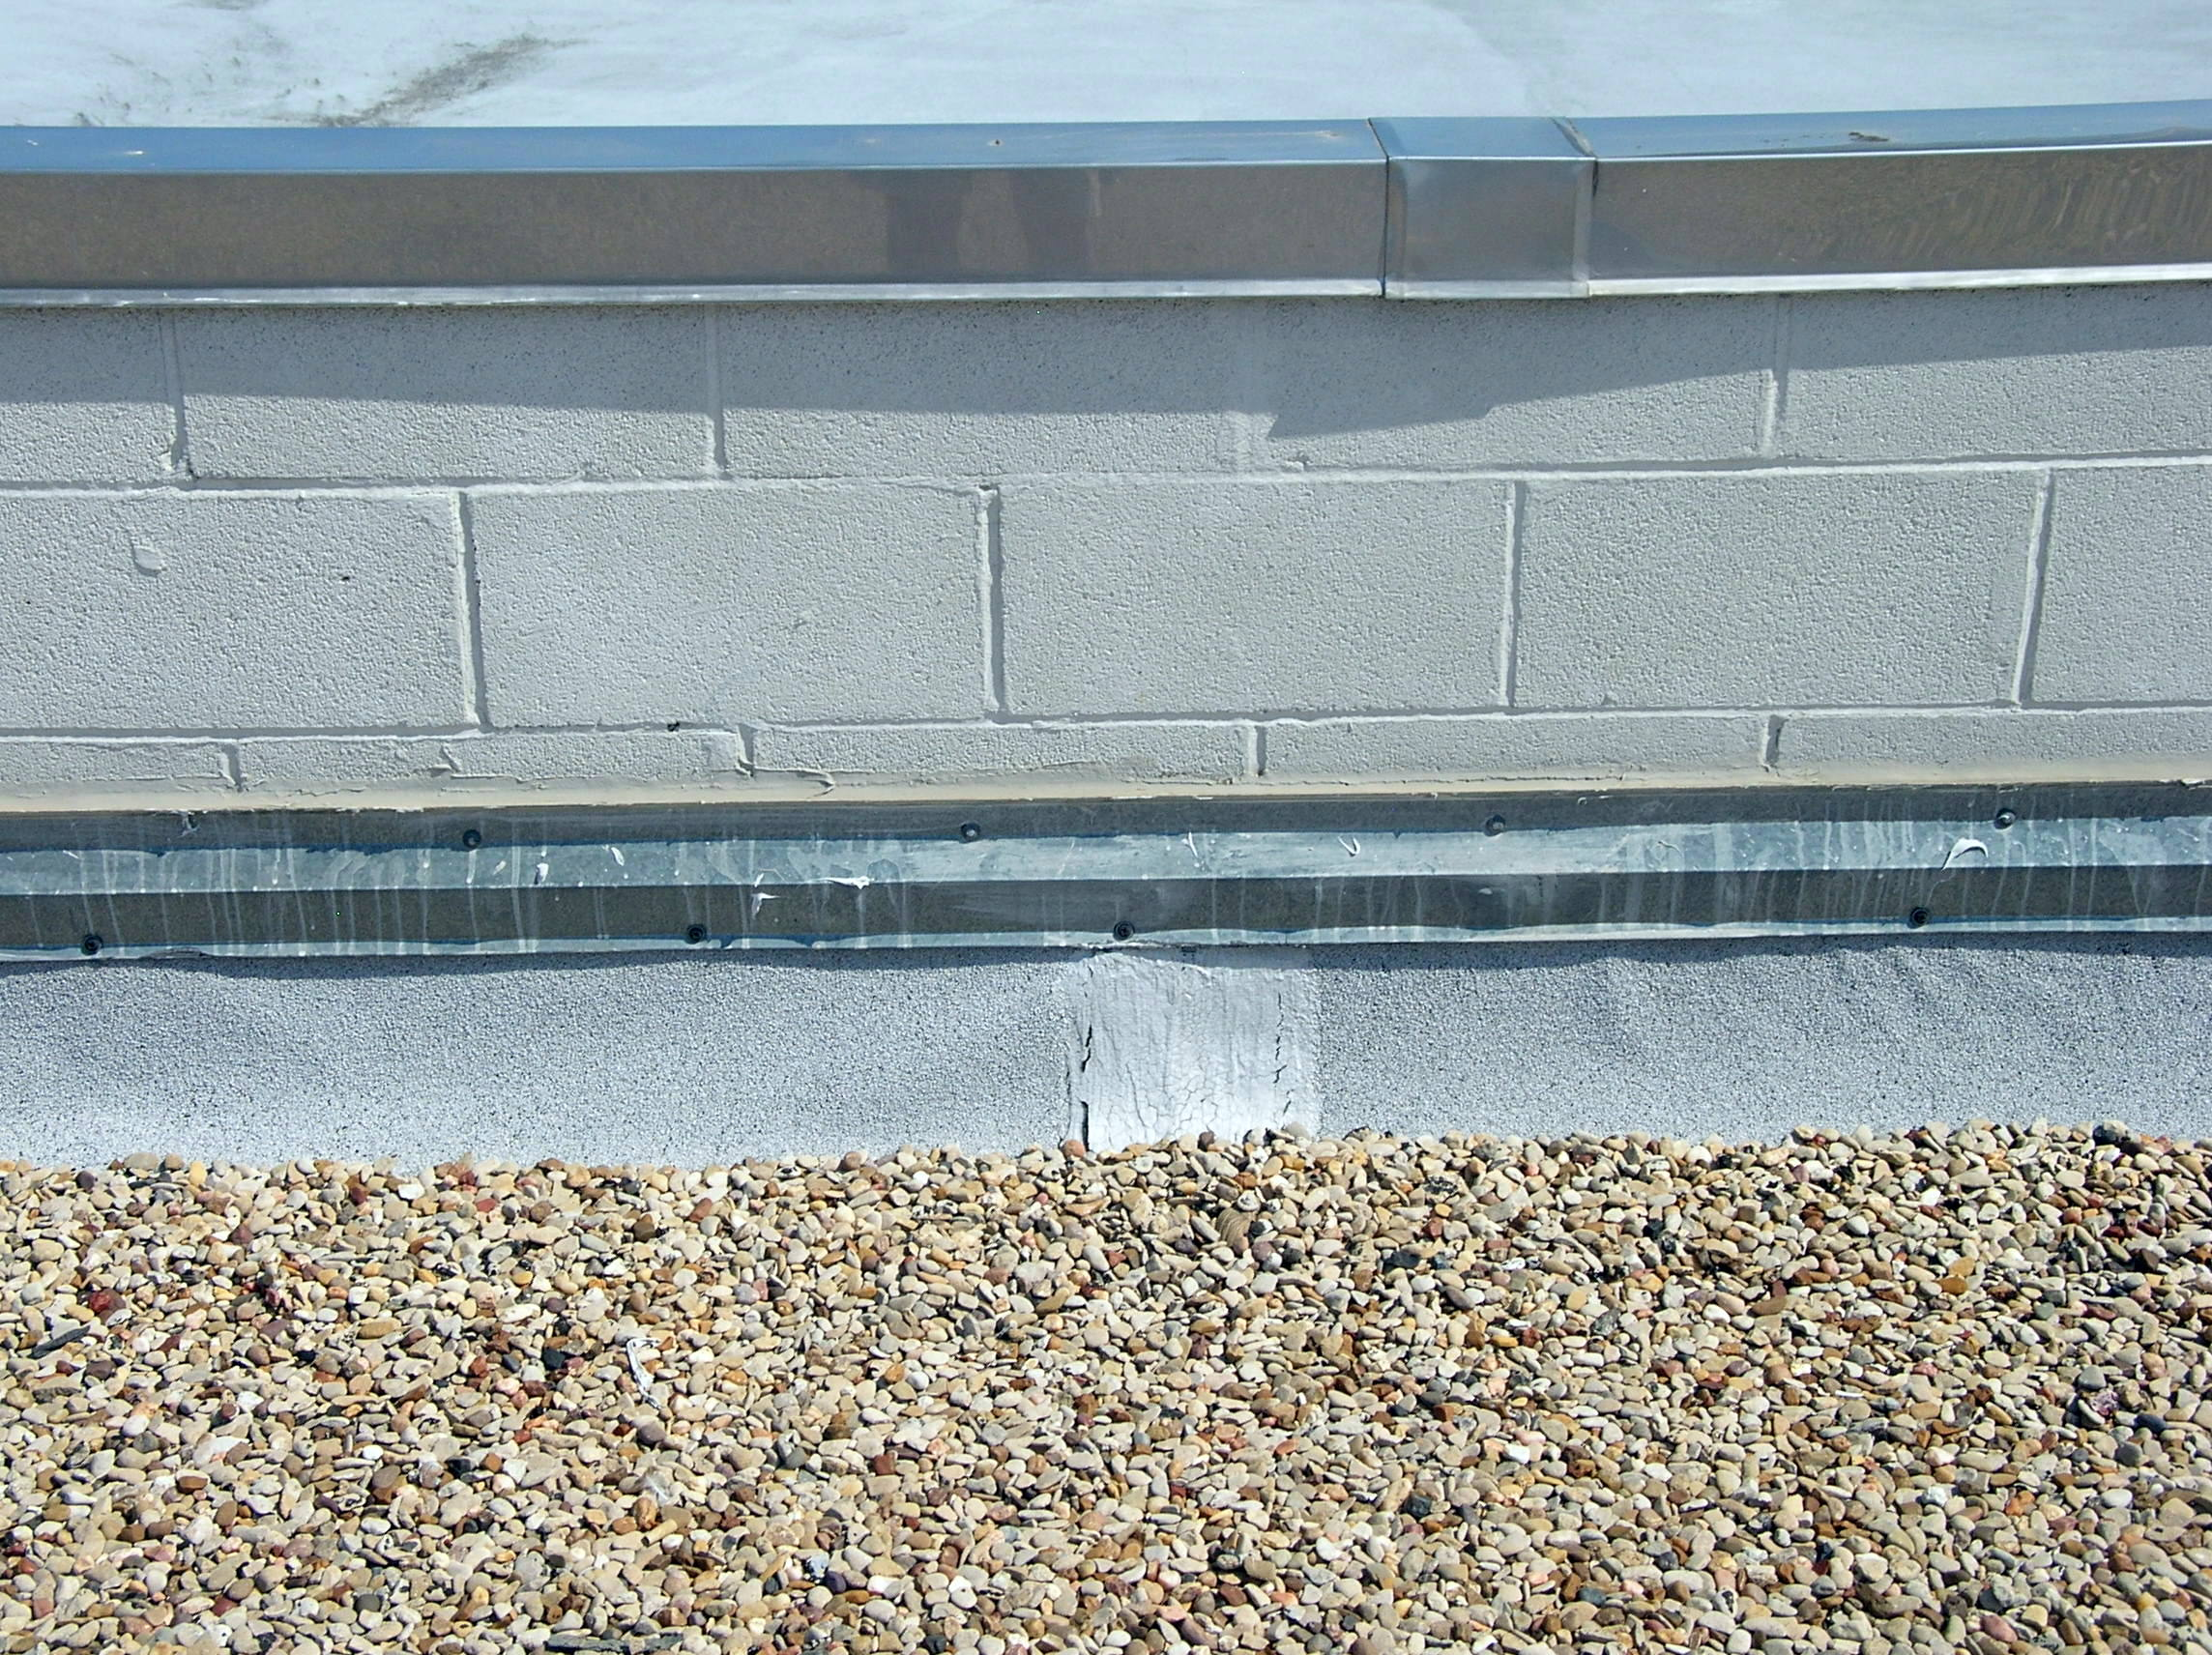 A coated concrete masonry unit parapet wall with stainless steel coping, modified bitumen base flashing, and surface-mounted metal counter-flashing.